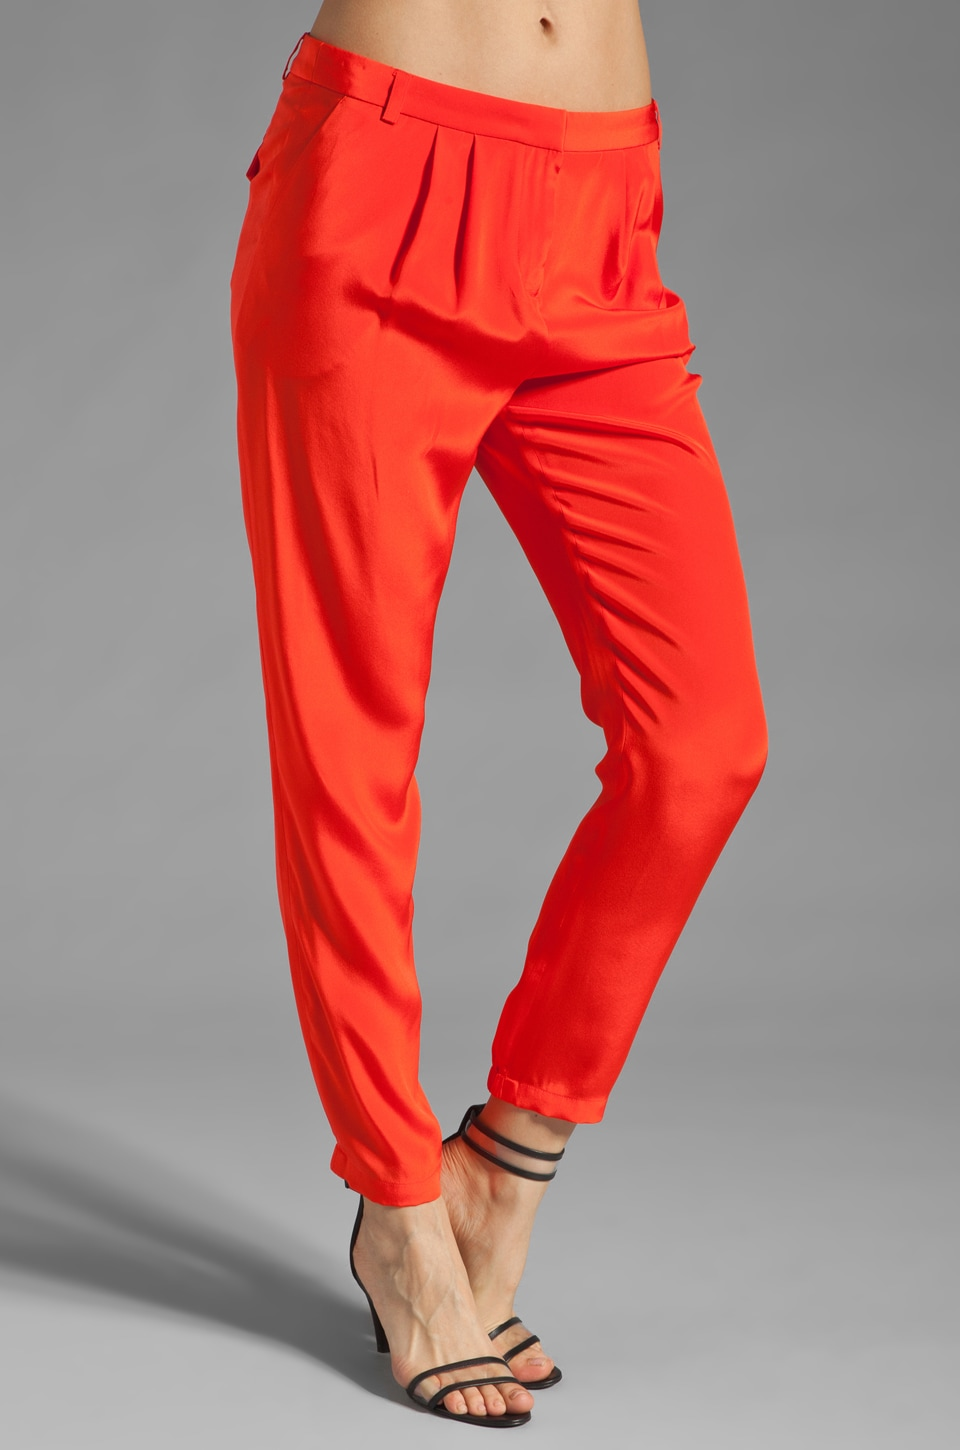 Tibi Solid Silk Pant in Deep Coral